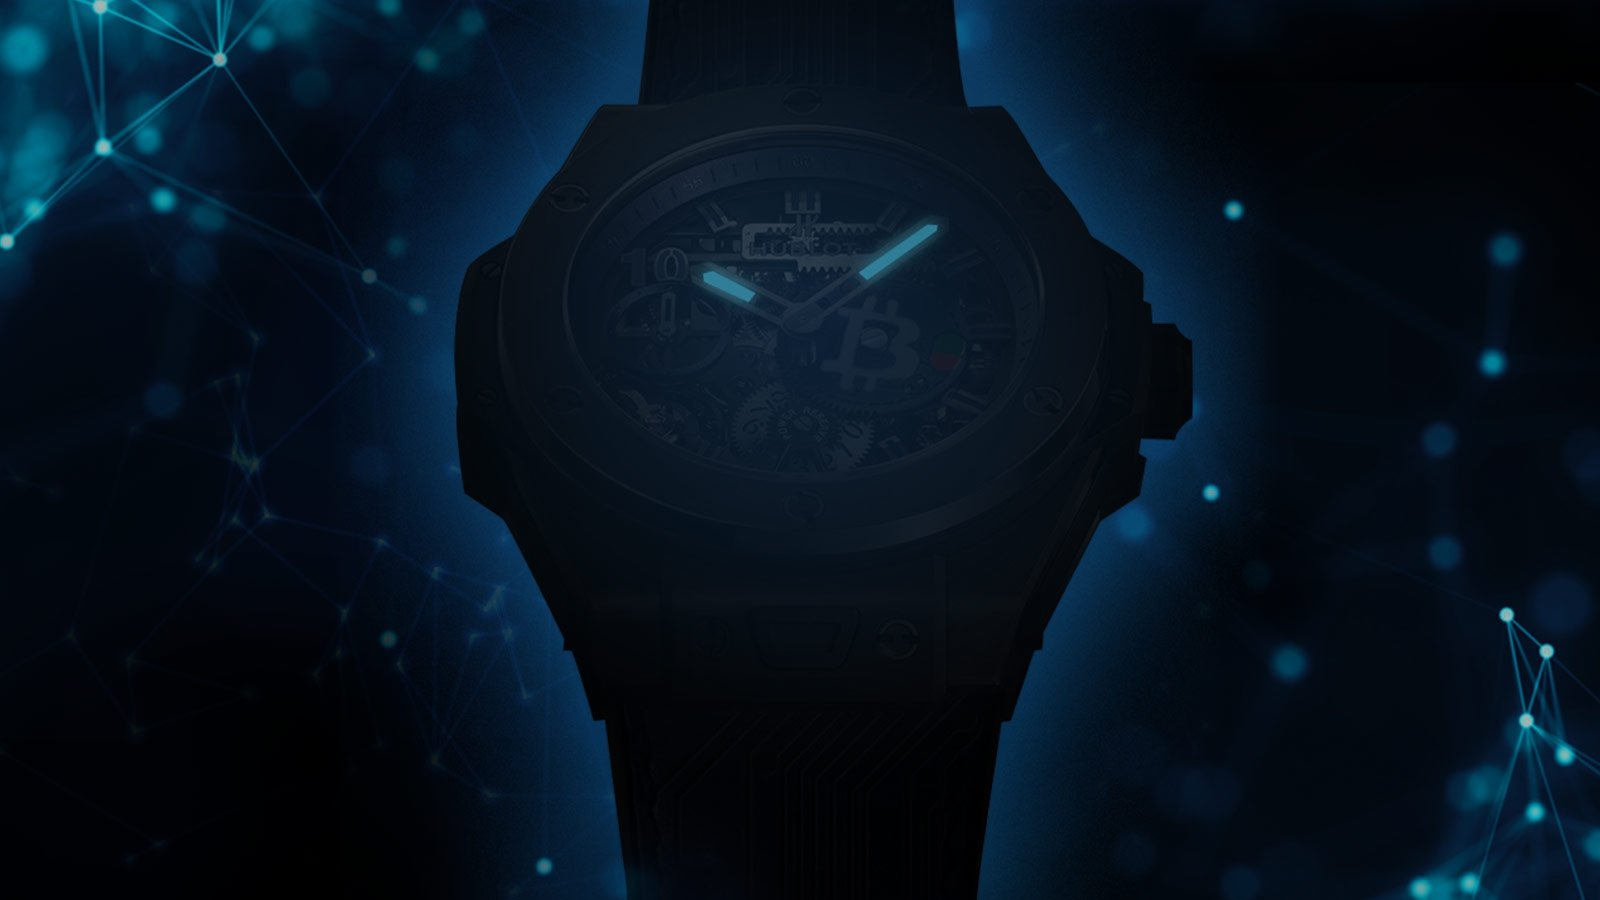 This new limited edition Hublot watch can only be purchased with Bitcoins